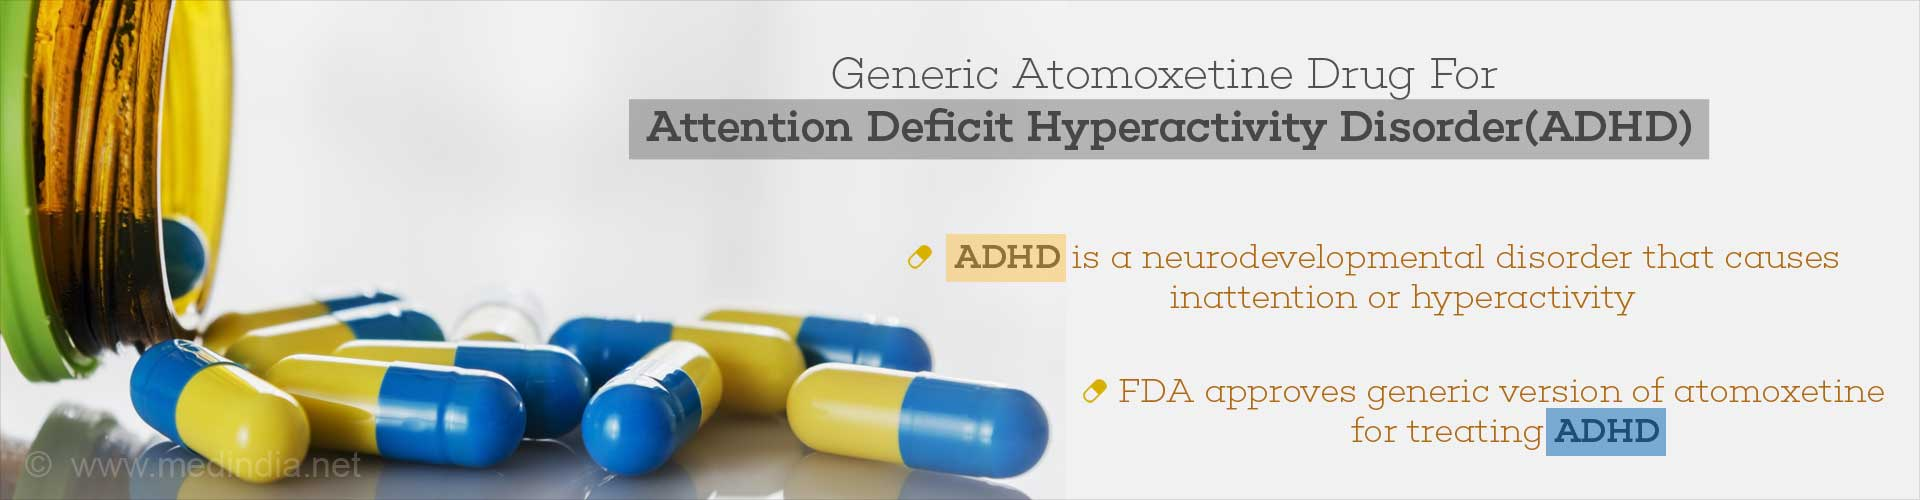 FDA Approves Generic Drug Atomoxetine to Treat Attention Deficit Hyperactivity Disorder (ADHD)